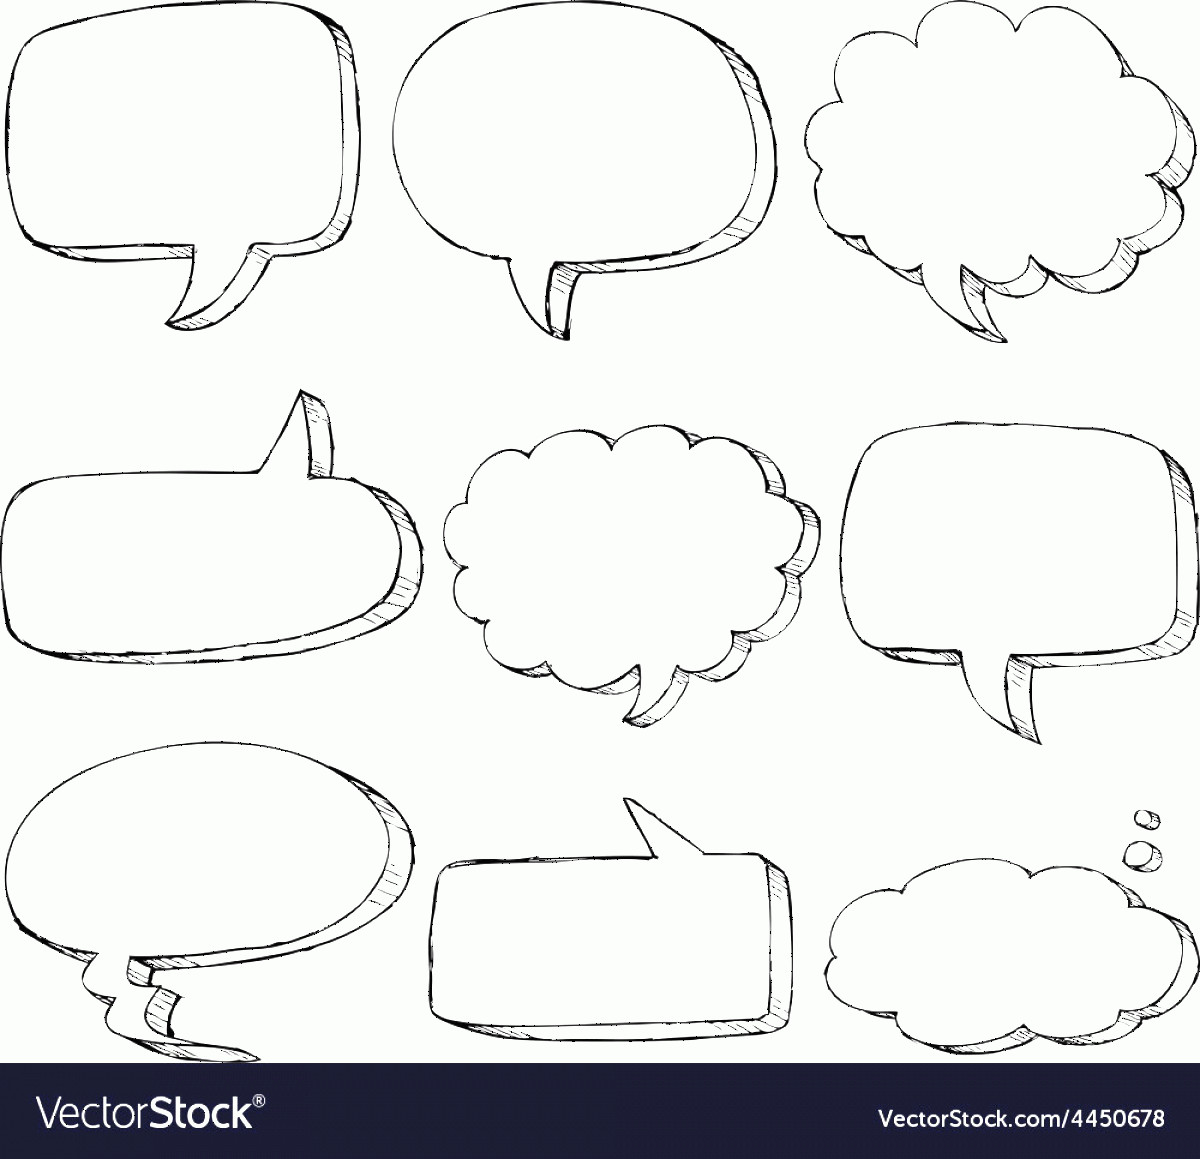 Thought Bubble Vector Sketch: Hand Drawn Comic Speech Bubble Vector